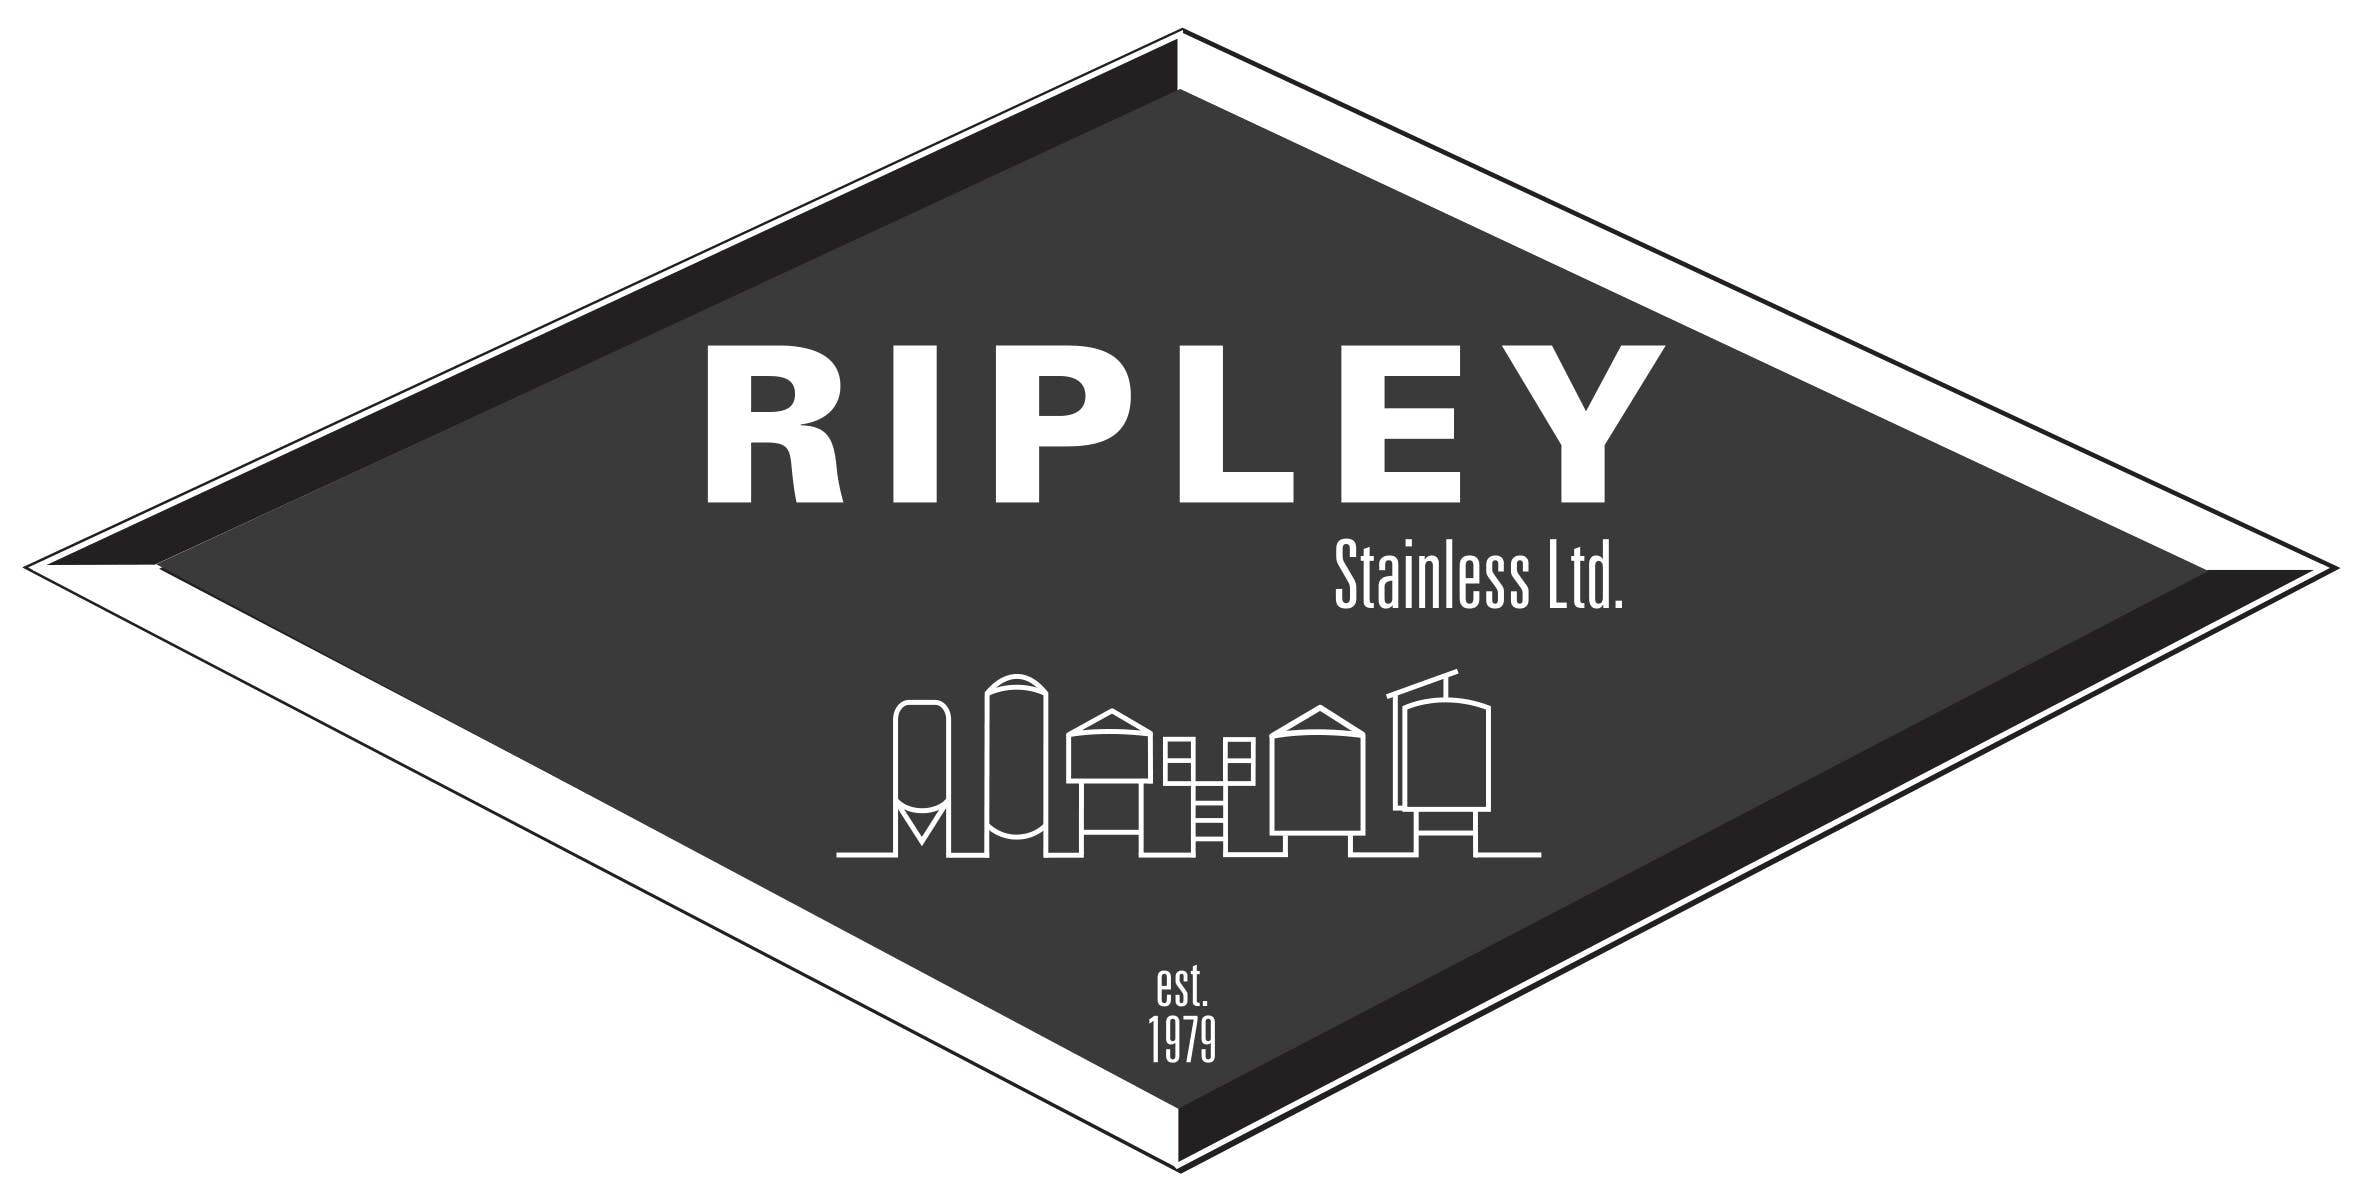 Ripley Stainless Ltd logo